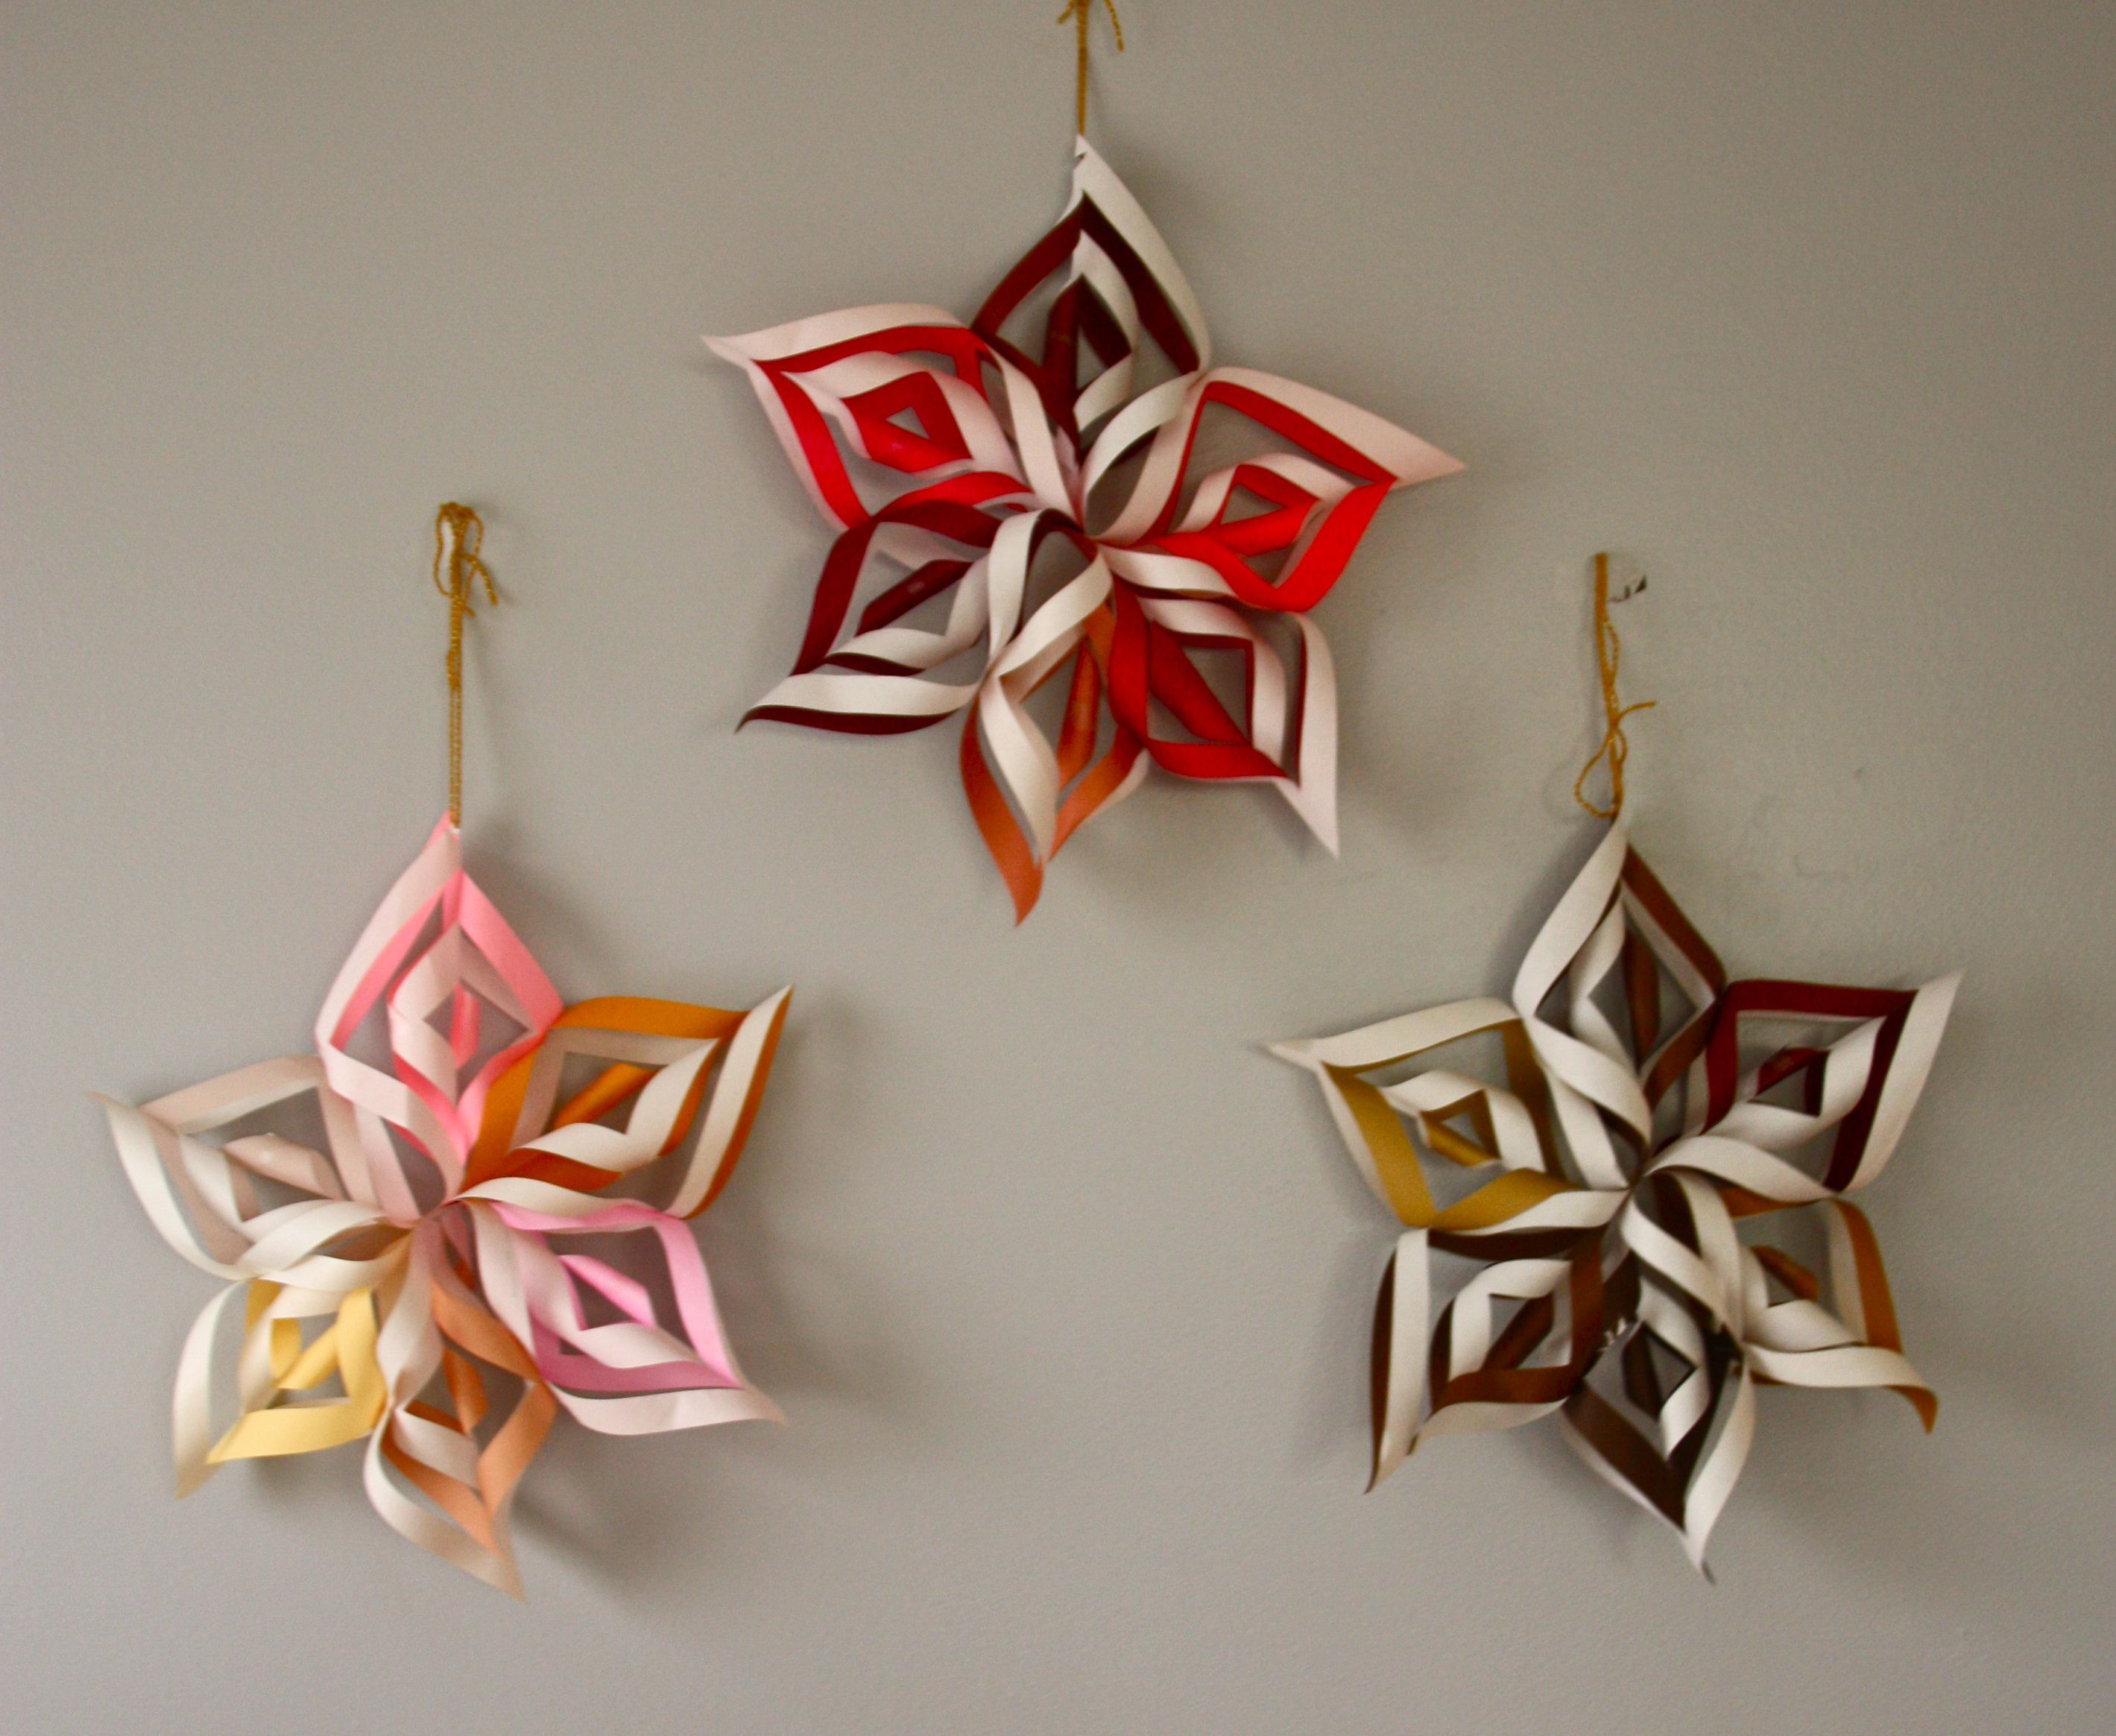 Six Pointed 3D Snowflake